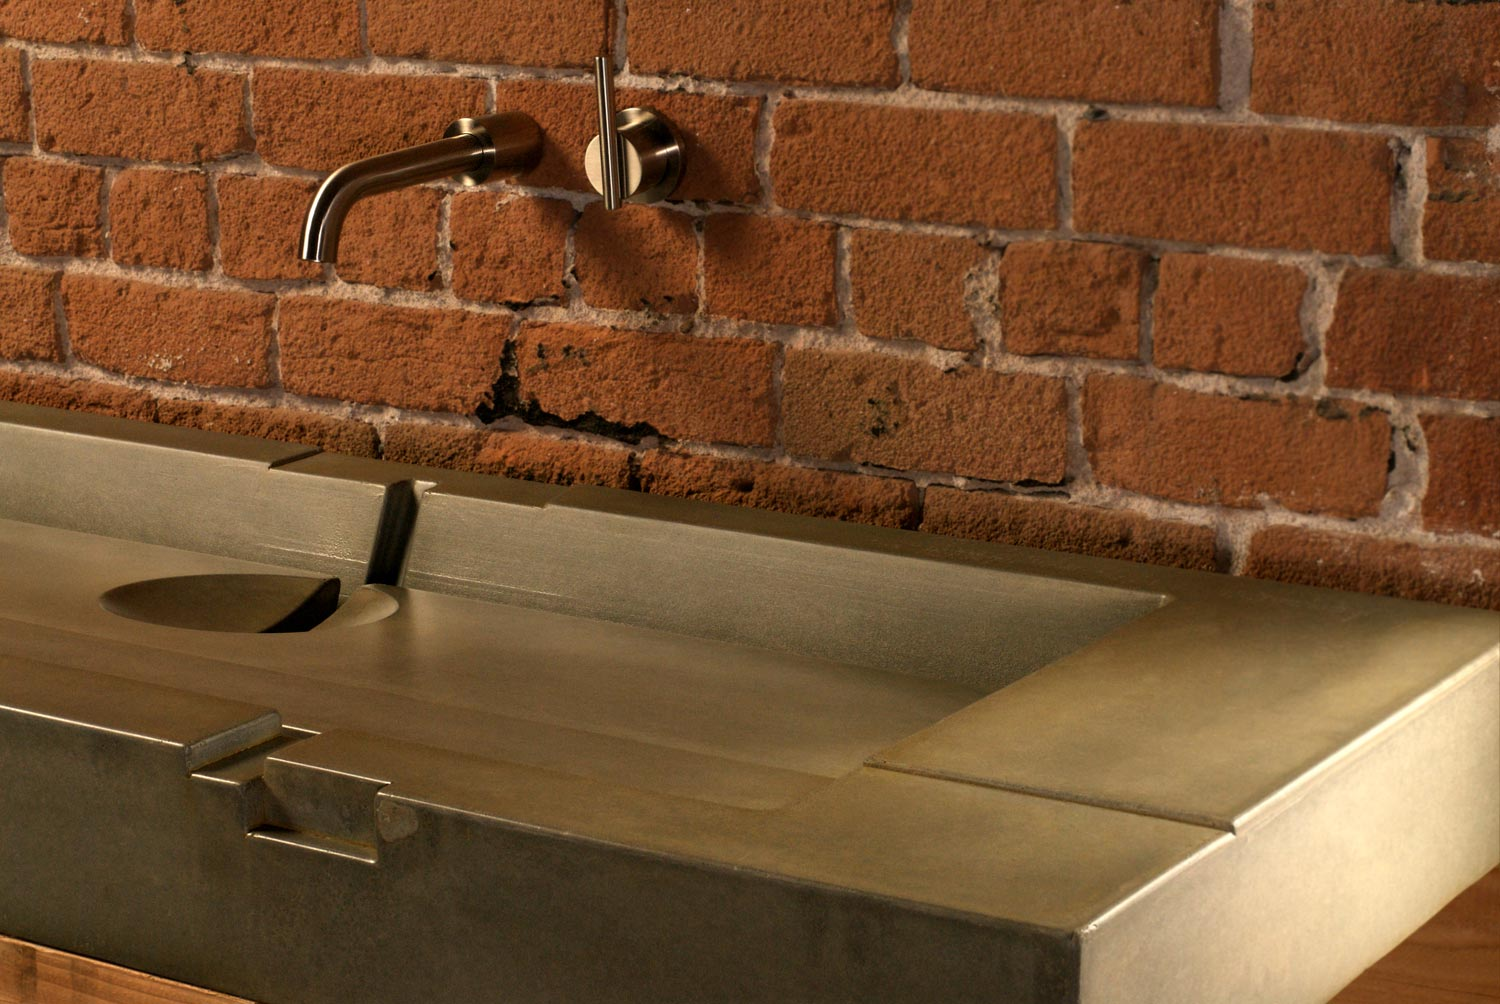 The Aztec Sink is a concrete sink featuring several layers and geometric design details. This particular sink is for a modern loft in downtown Phoenix, AZ